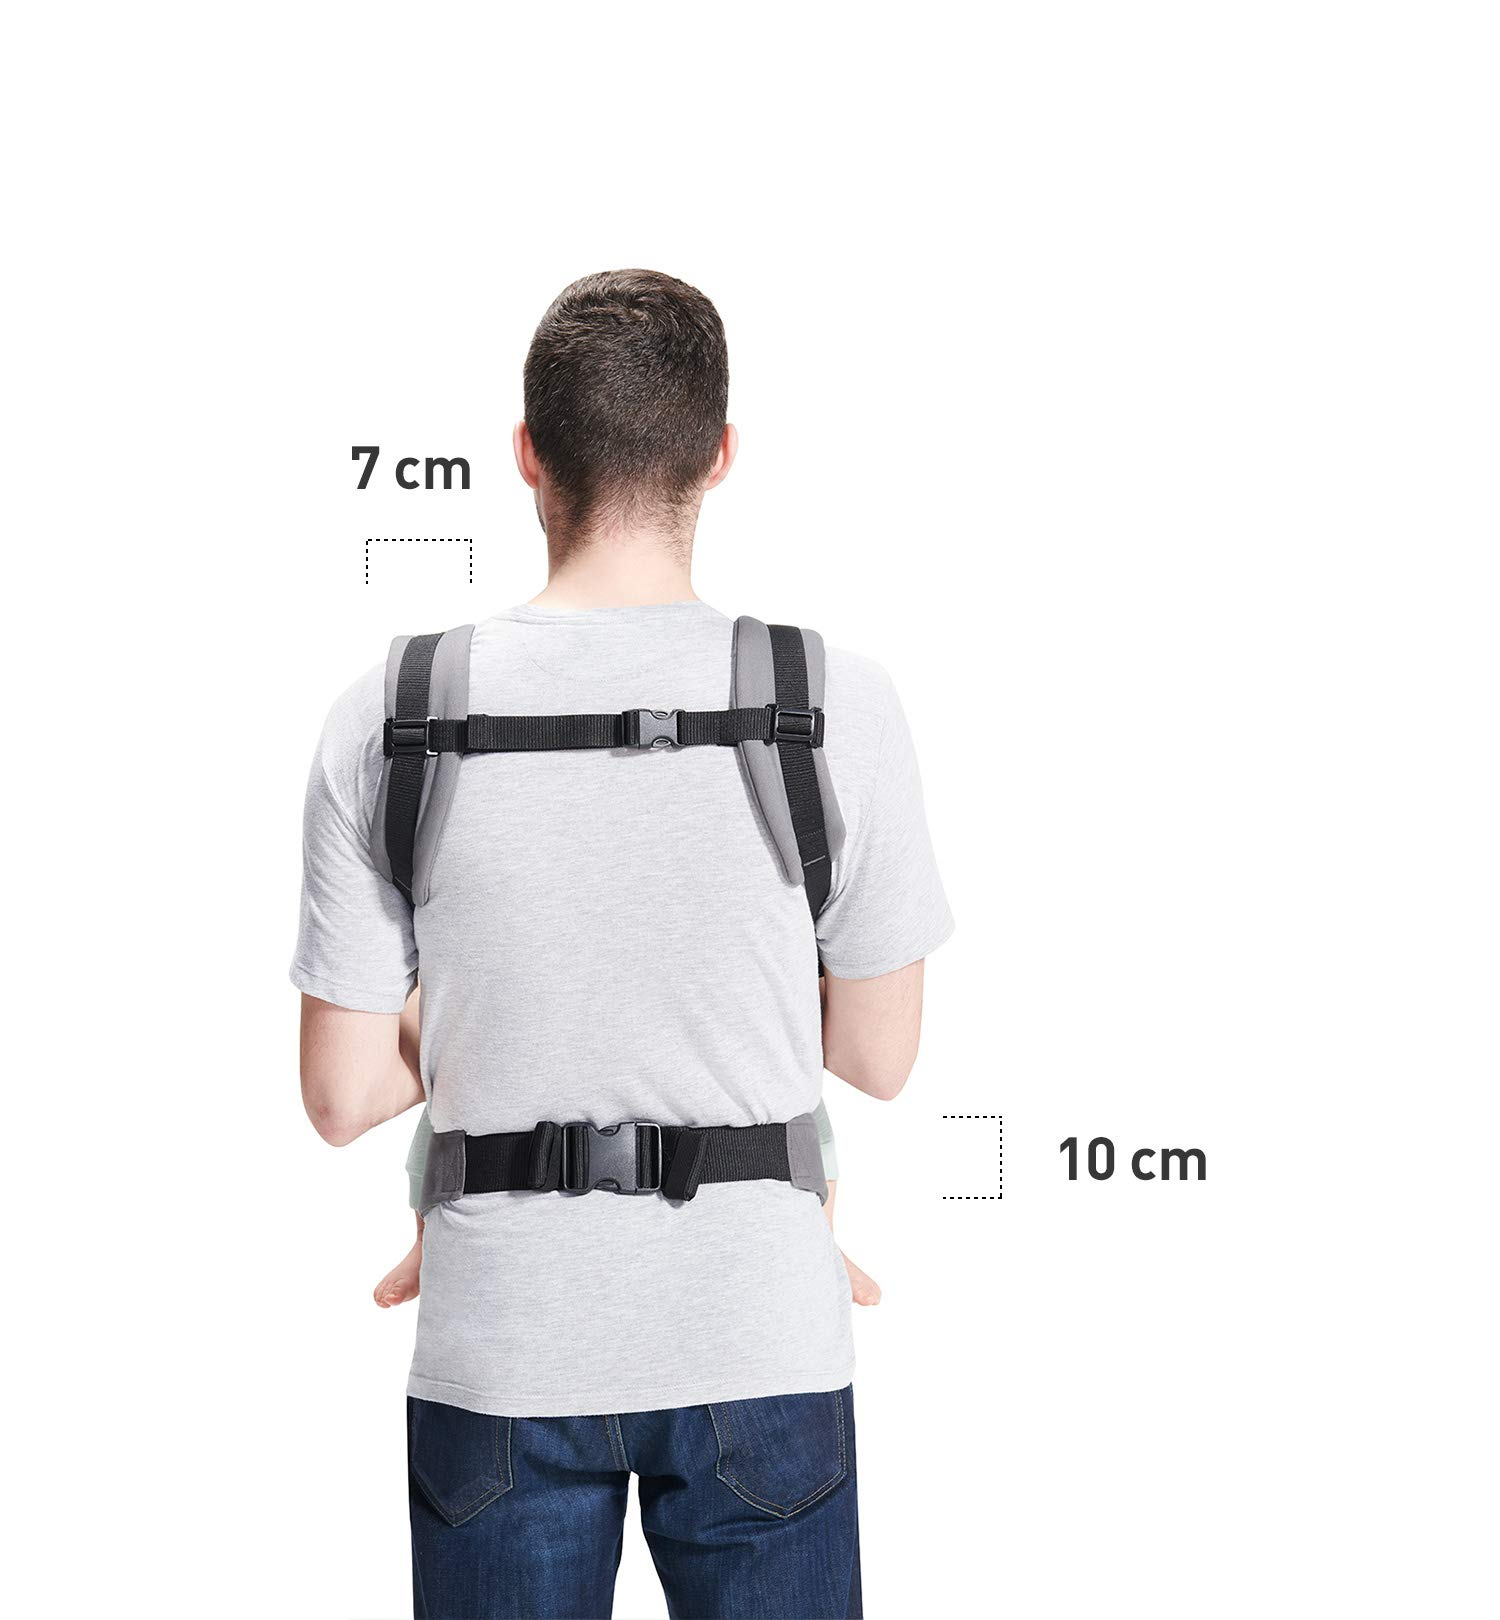 kk Kinderkraft Nino Ergonomic Baby Carrier Front Gray kk KinderKraft Thanks to a special, well-profiled layer, the baby's head does not tilt Ergonomic baby carrier for children aged from 3 months up to 20 kg The compact baby carrier can be folded to a small size and weighs only 0.39 kg 5